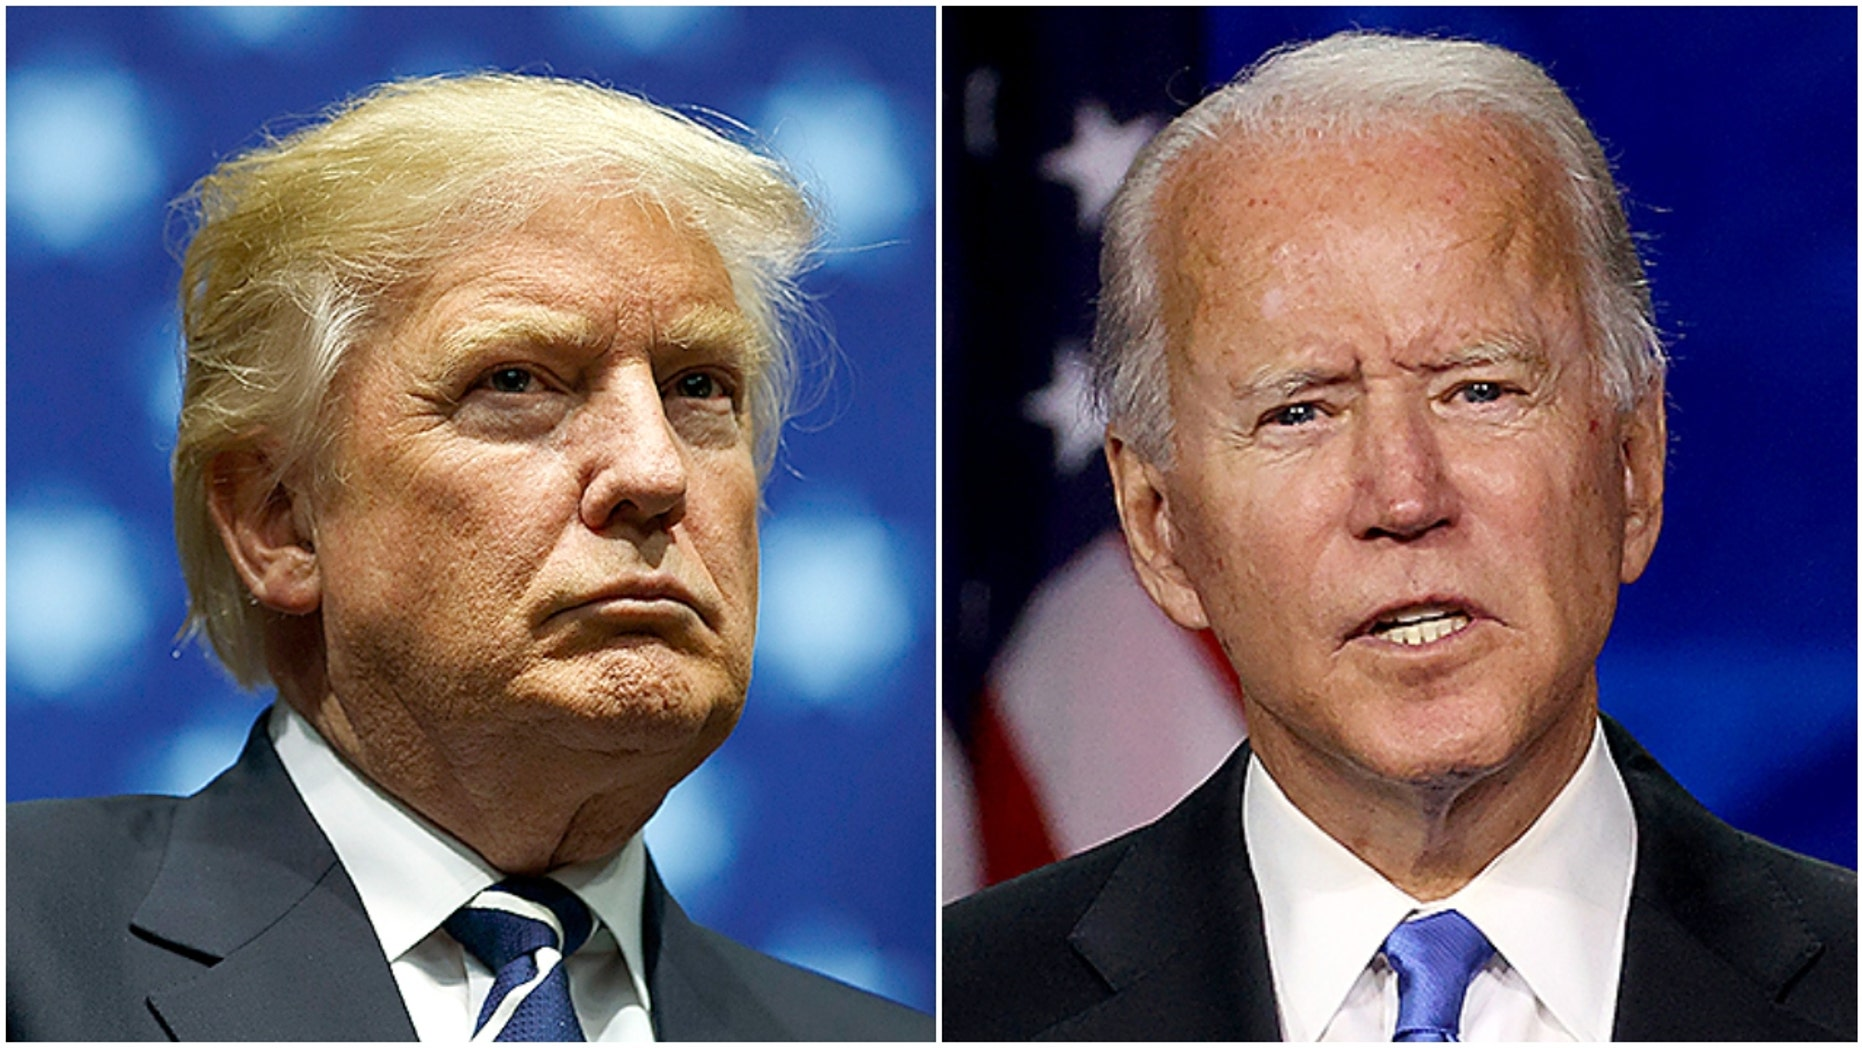 Trump rips Biden over silence on court packing, says he wouldn't last a full term